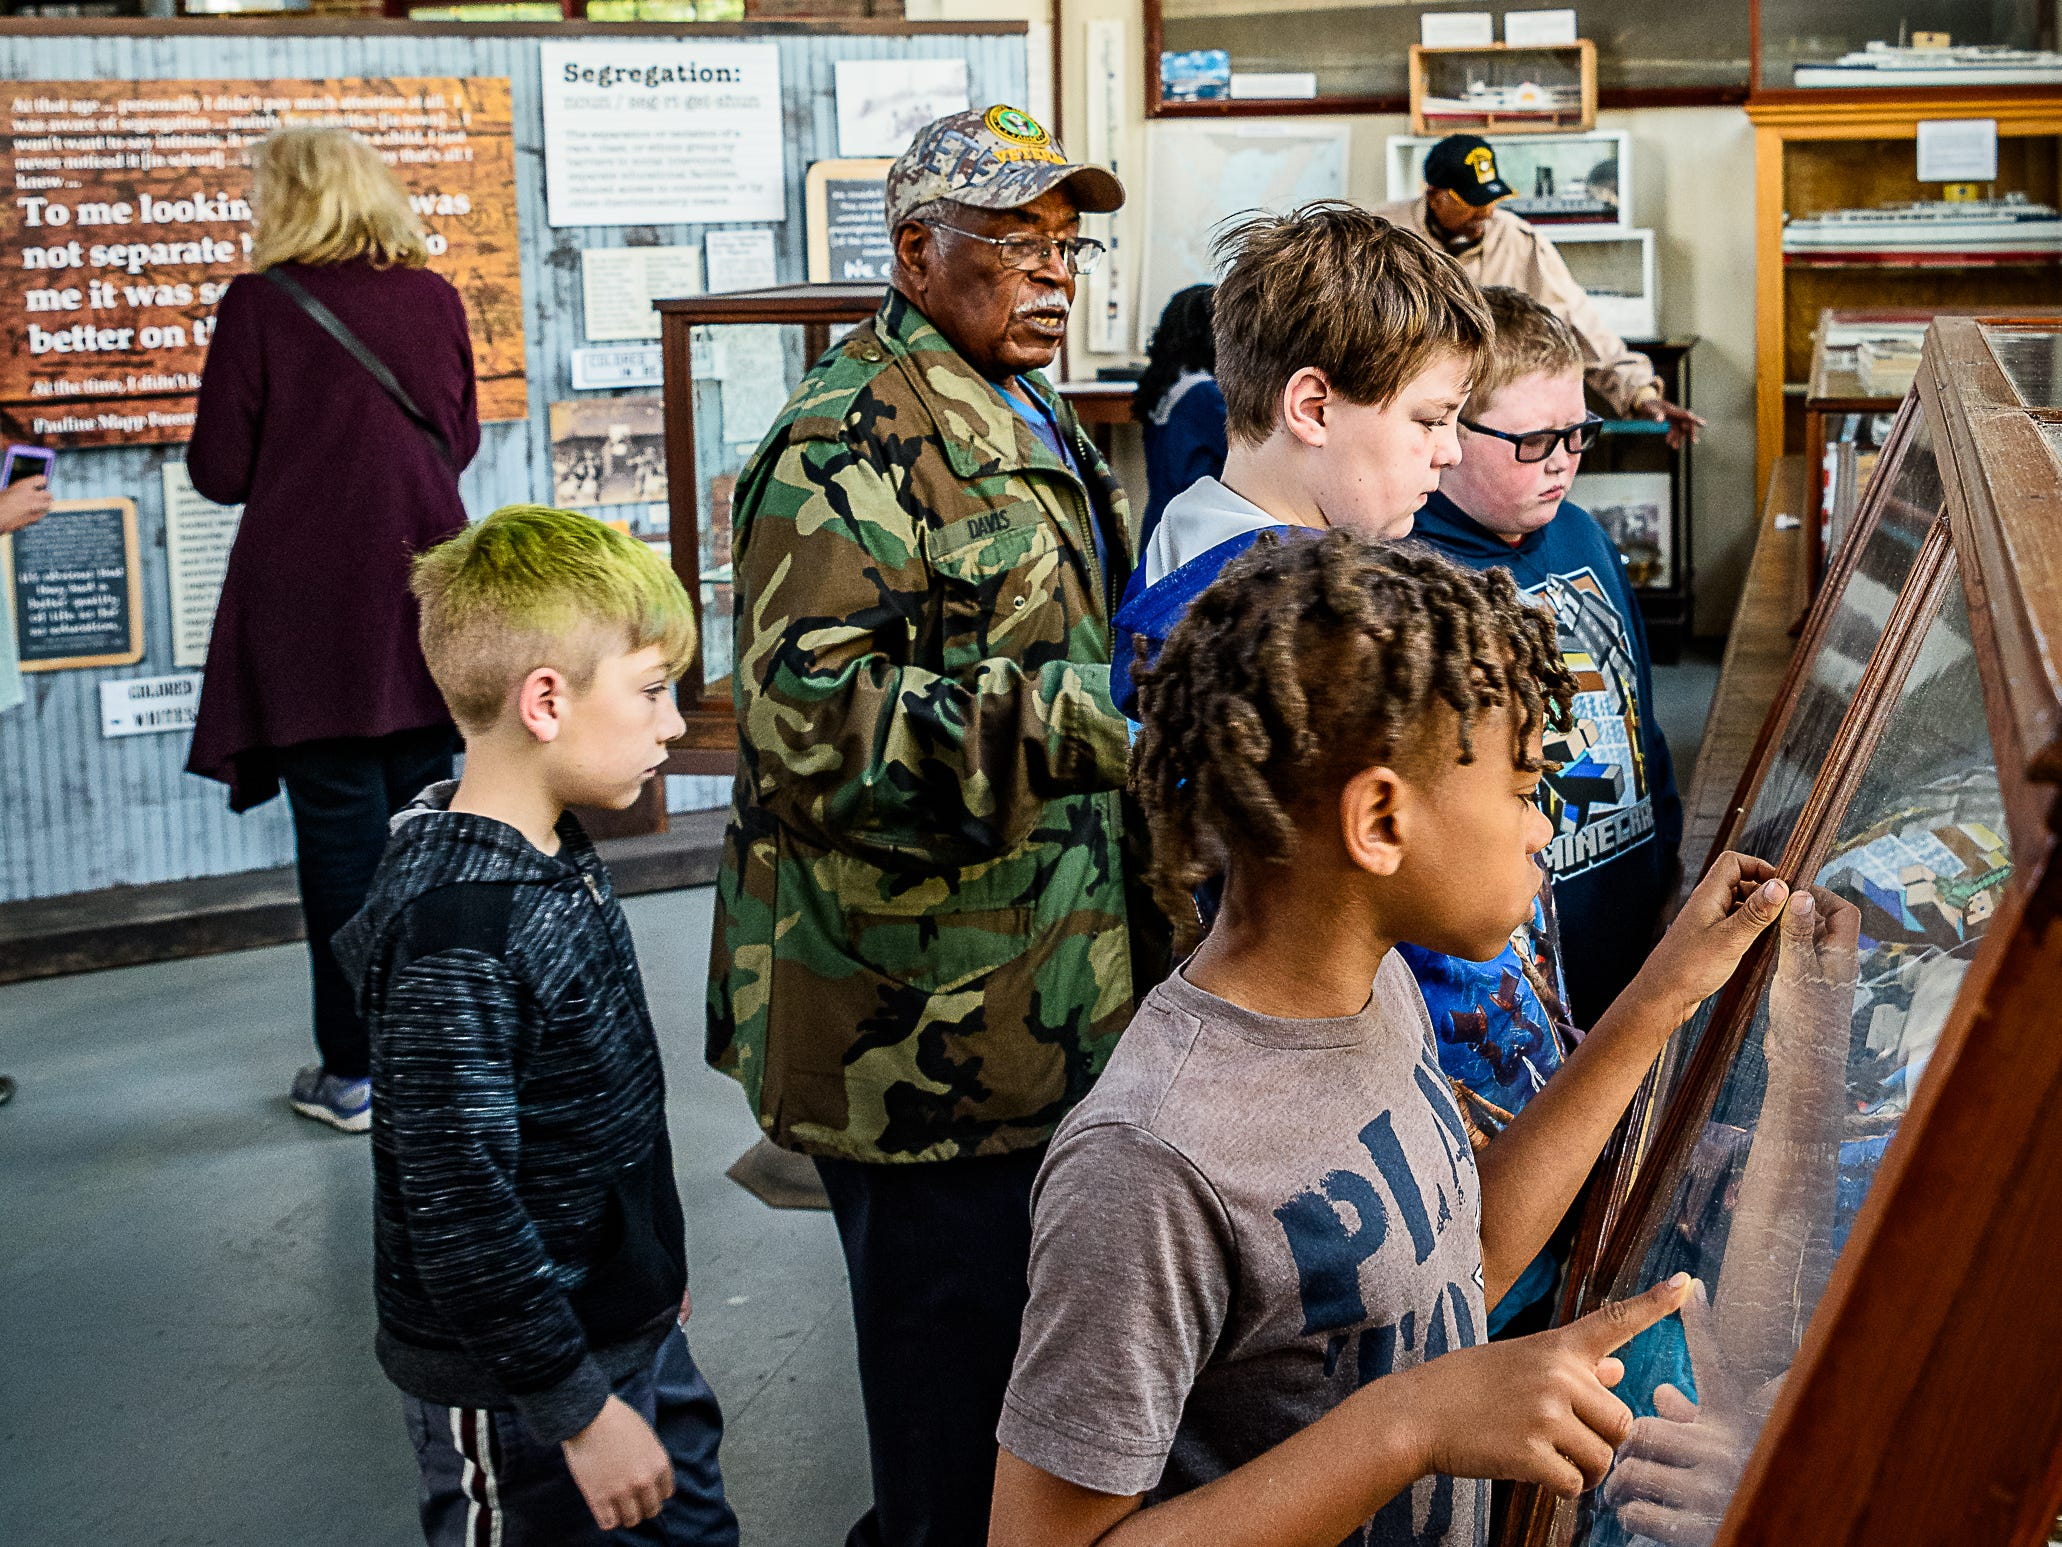 Former Rosenwald School student Bishop James Davis guides Kiptopeke fourth graders through the exhibits at the Cape Charles museum.